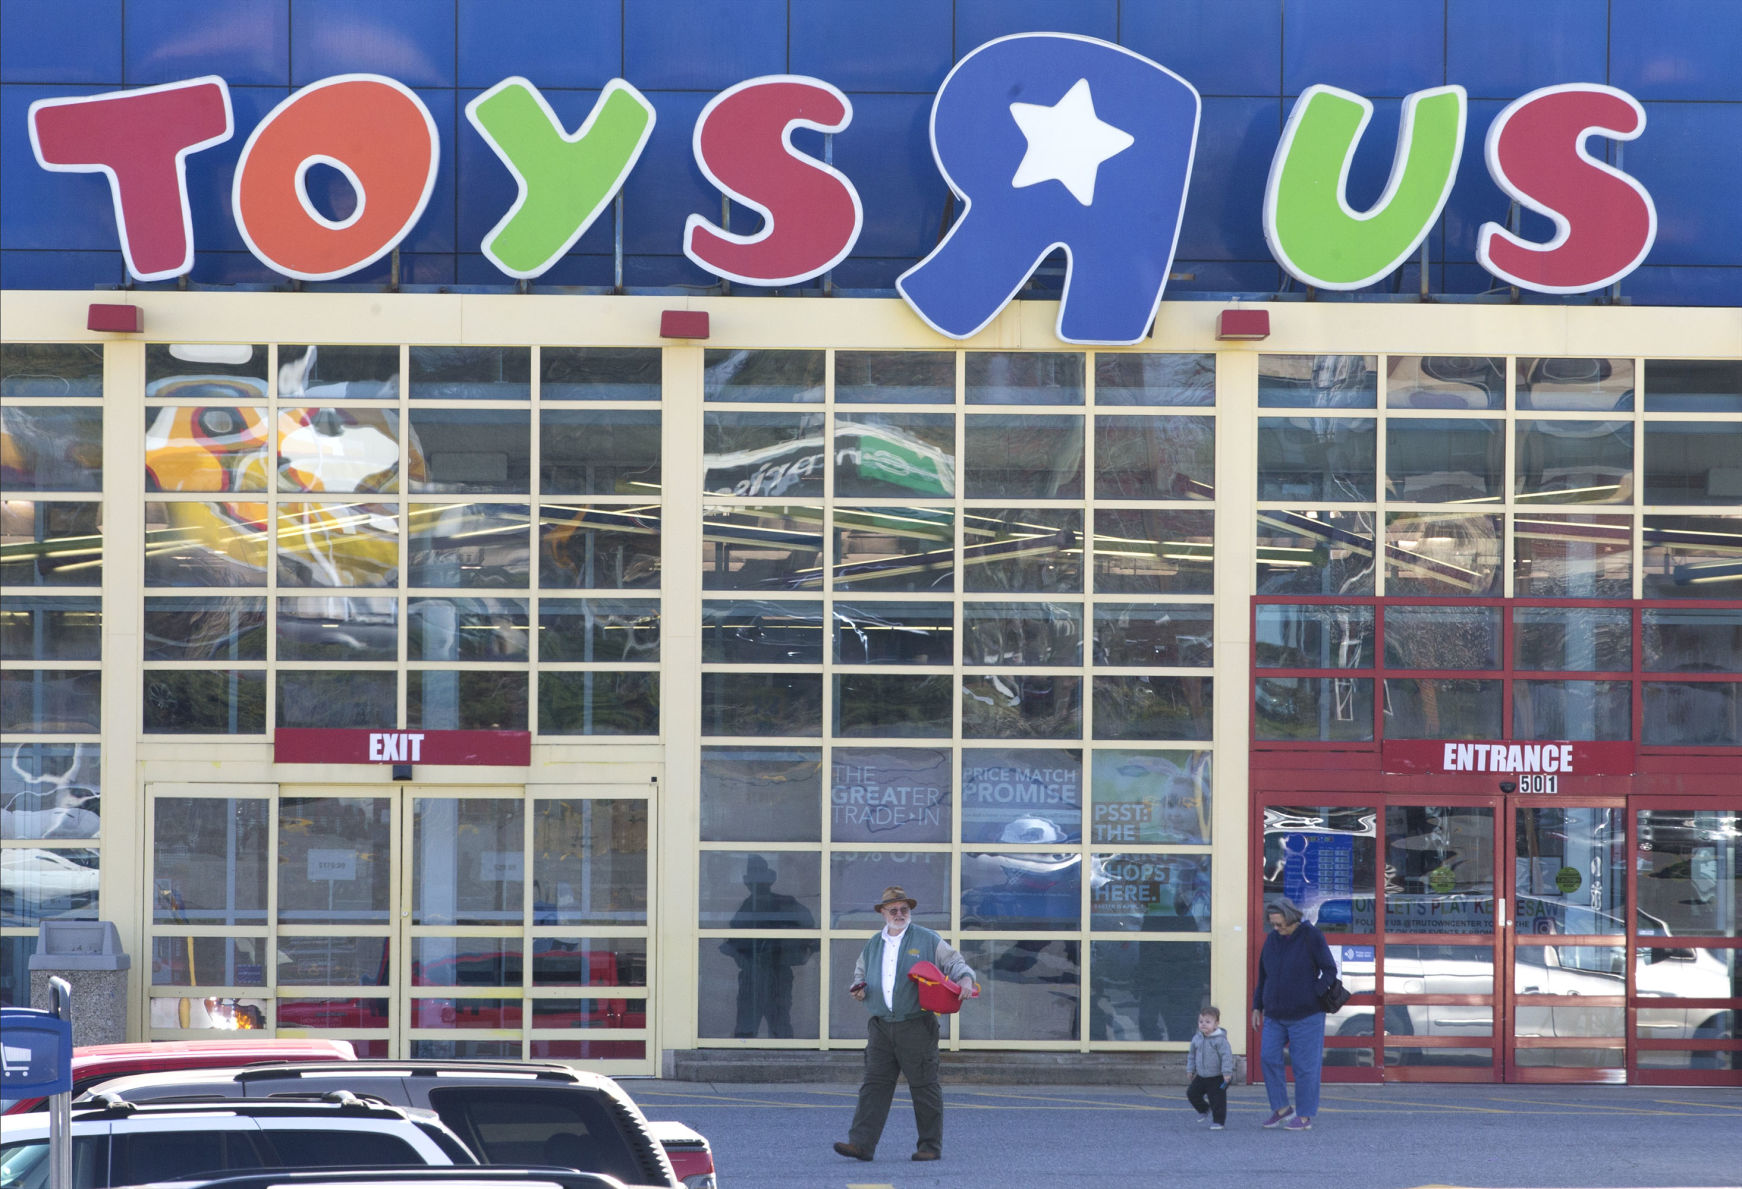 Nationwide Toys R Us Closures To Claim Cumberland